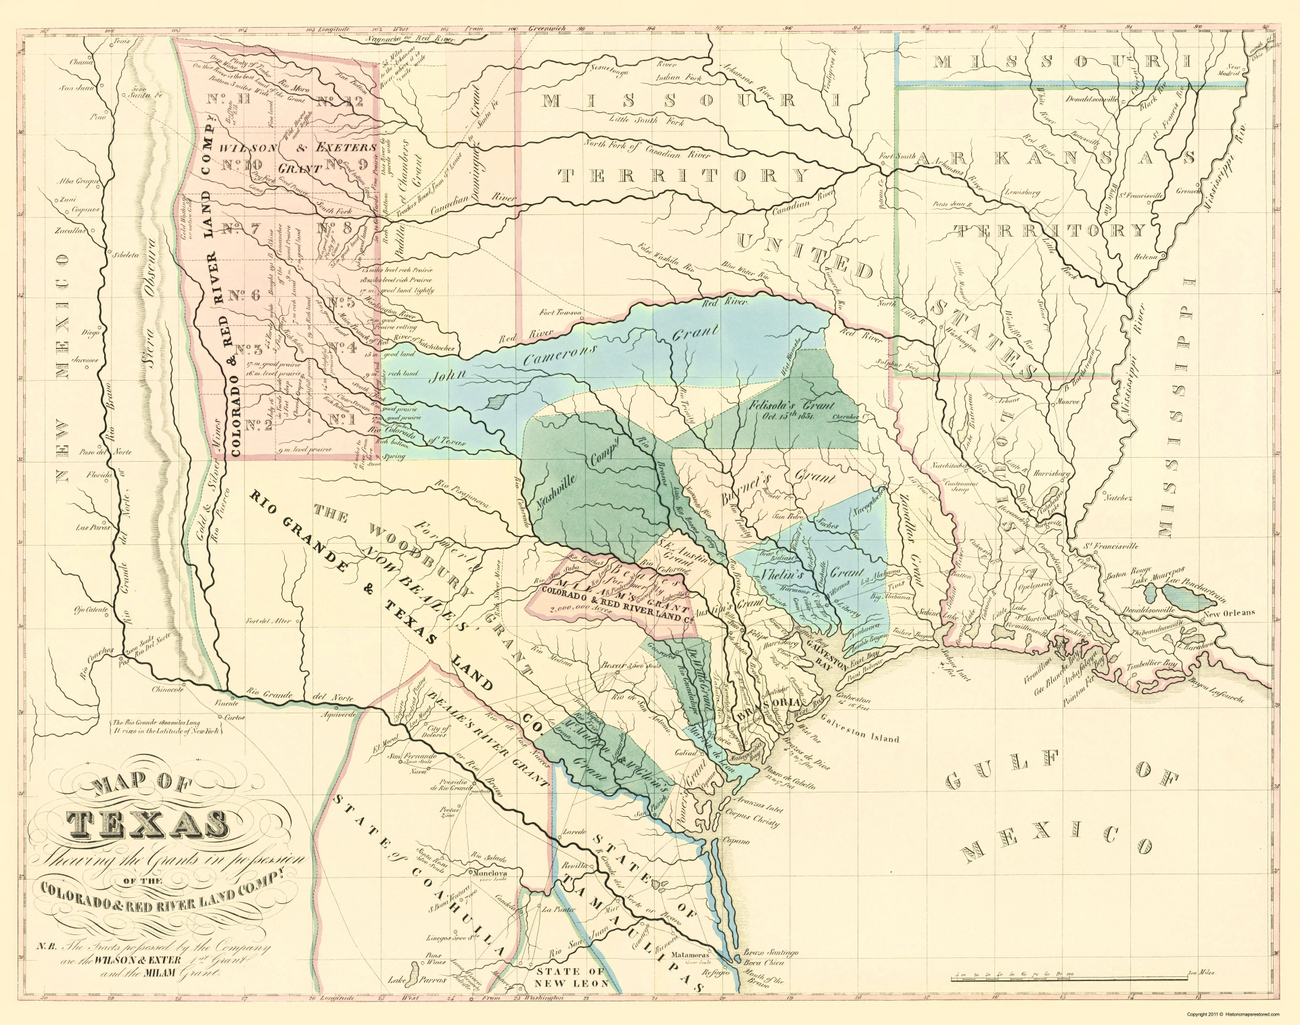 Old State Maps  TEXAS MAP OF GRANTS BY THE COLORADO AND